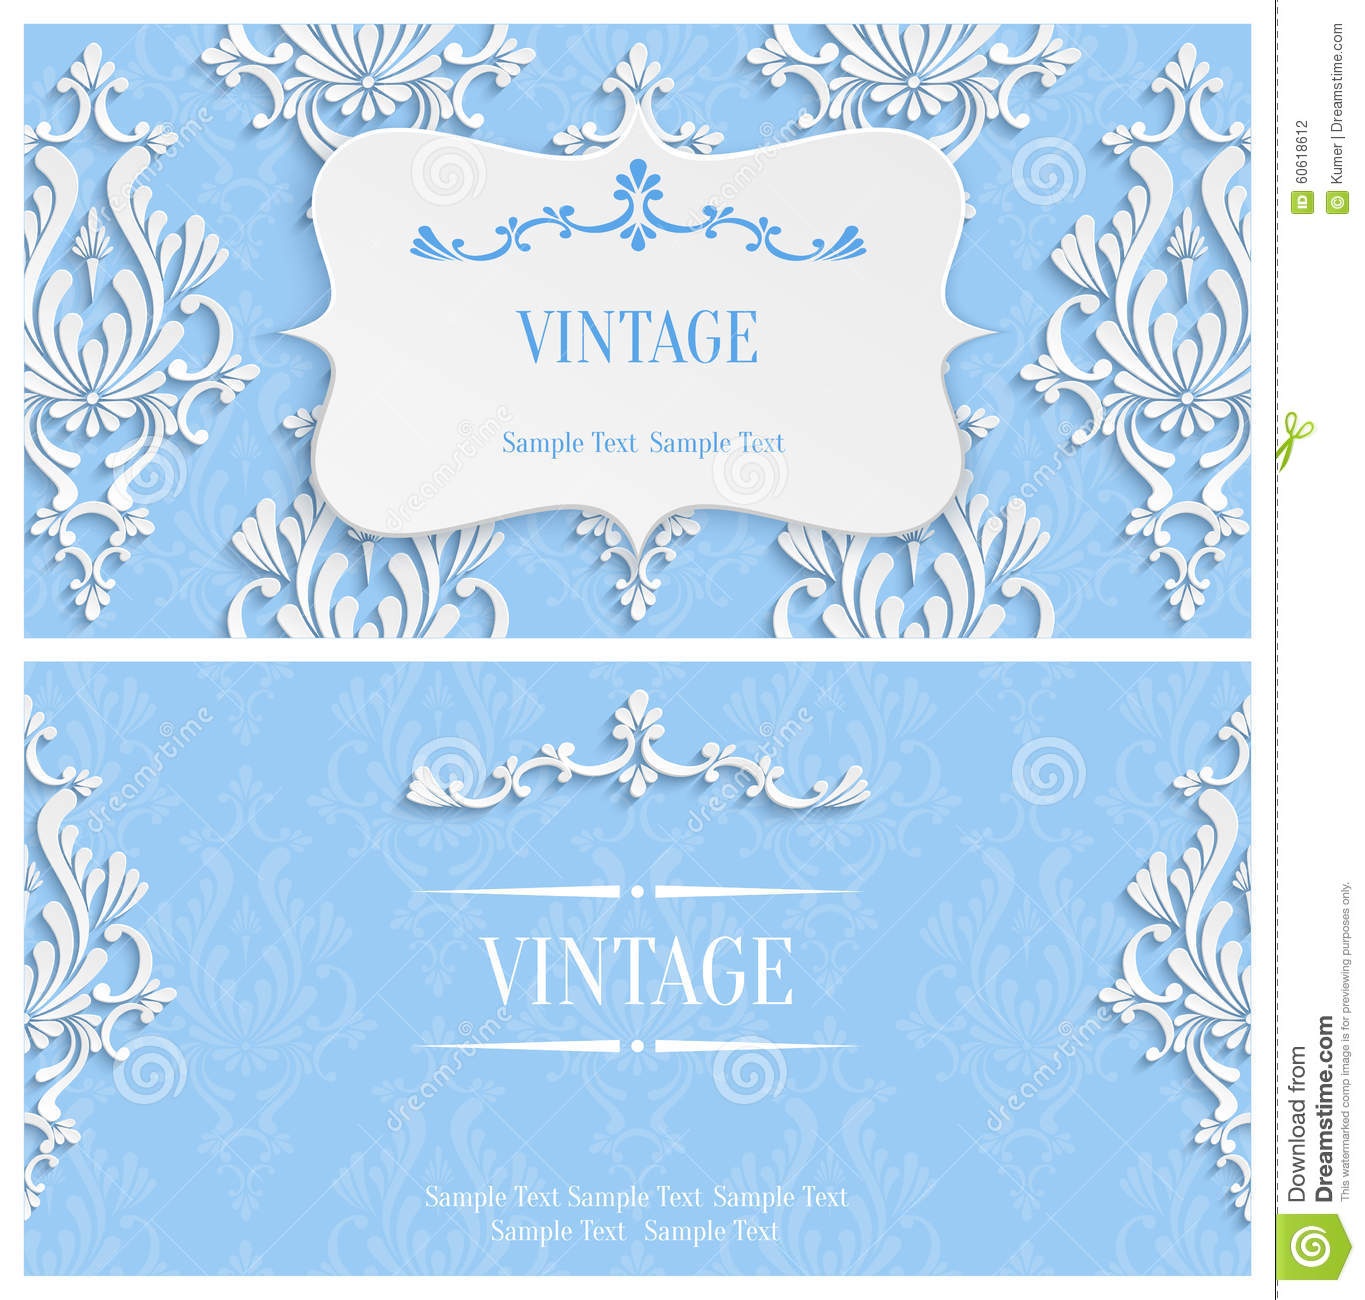 vector blue d vintage invitation template with floral damask, invitation samples